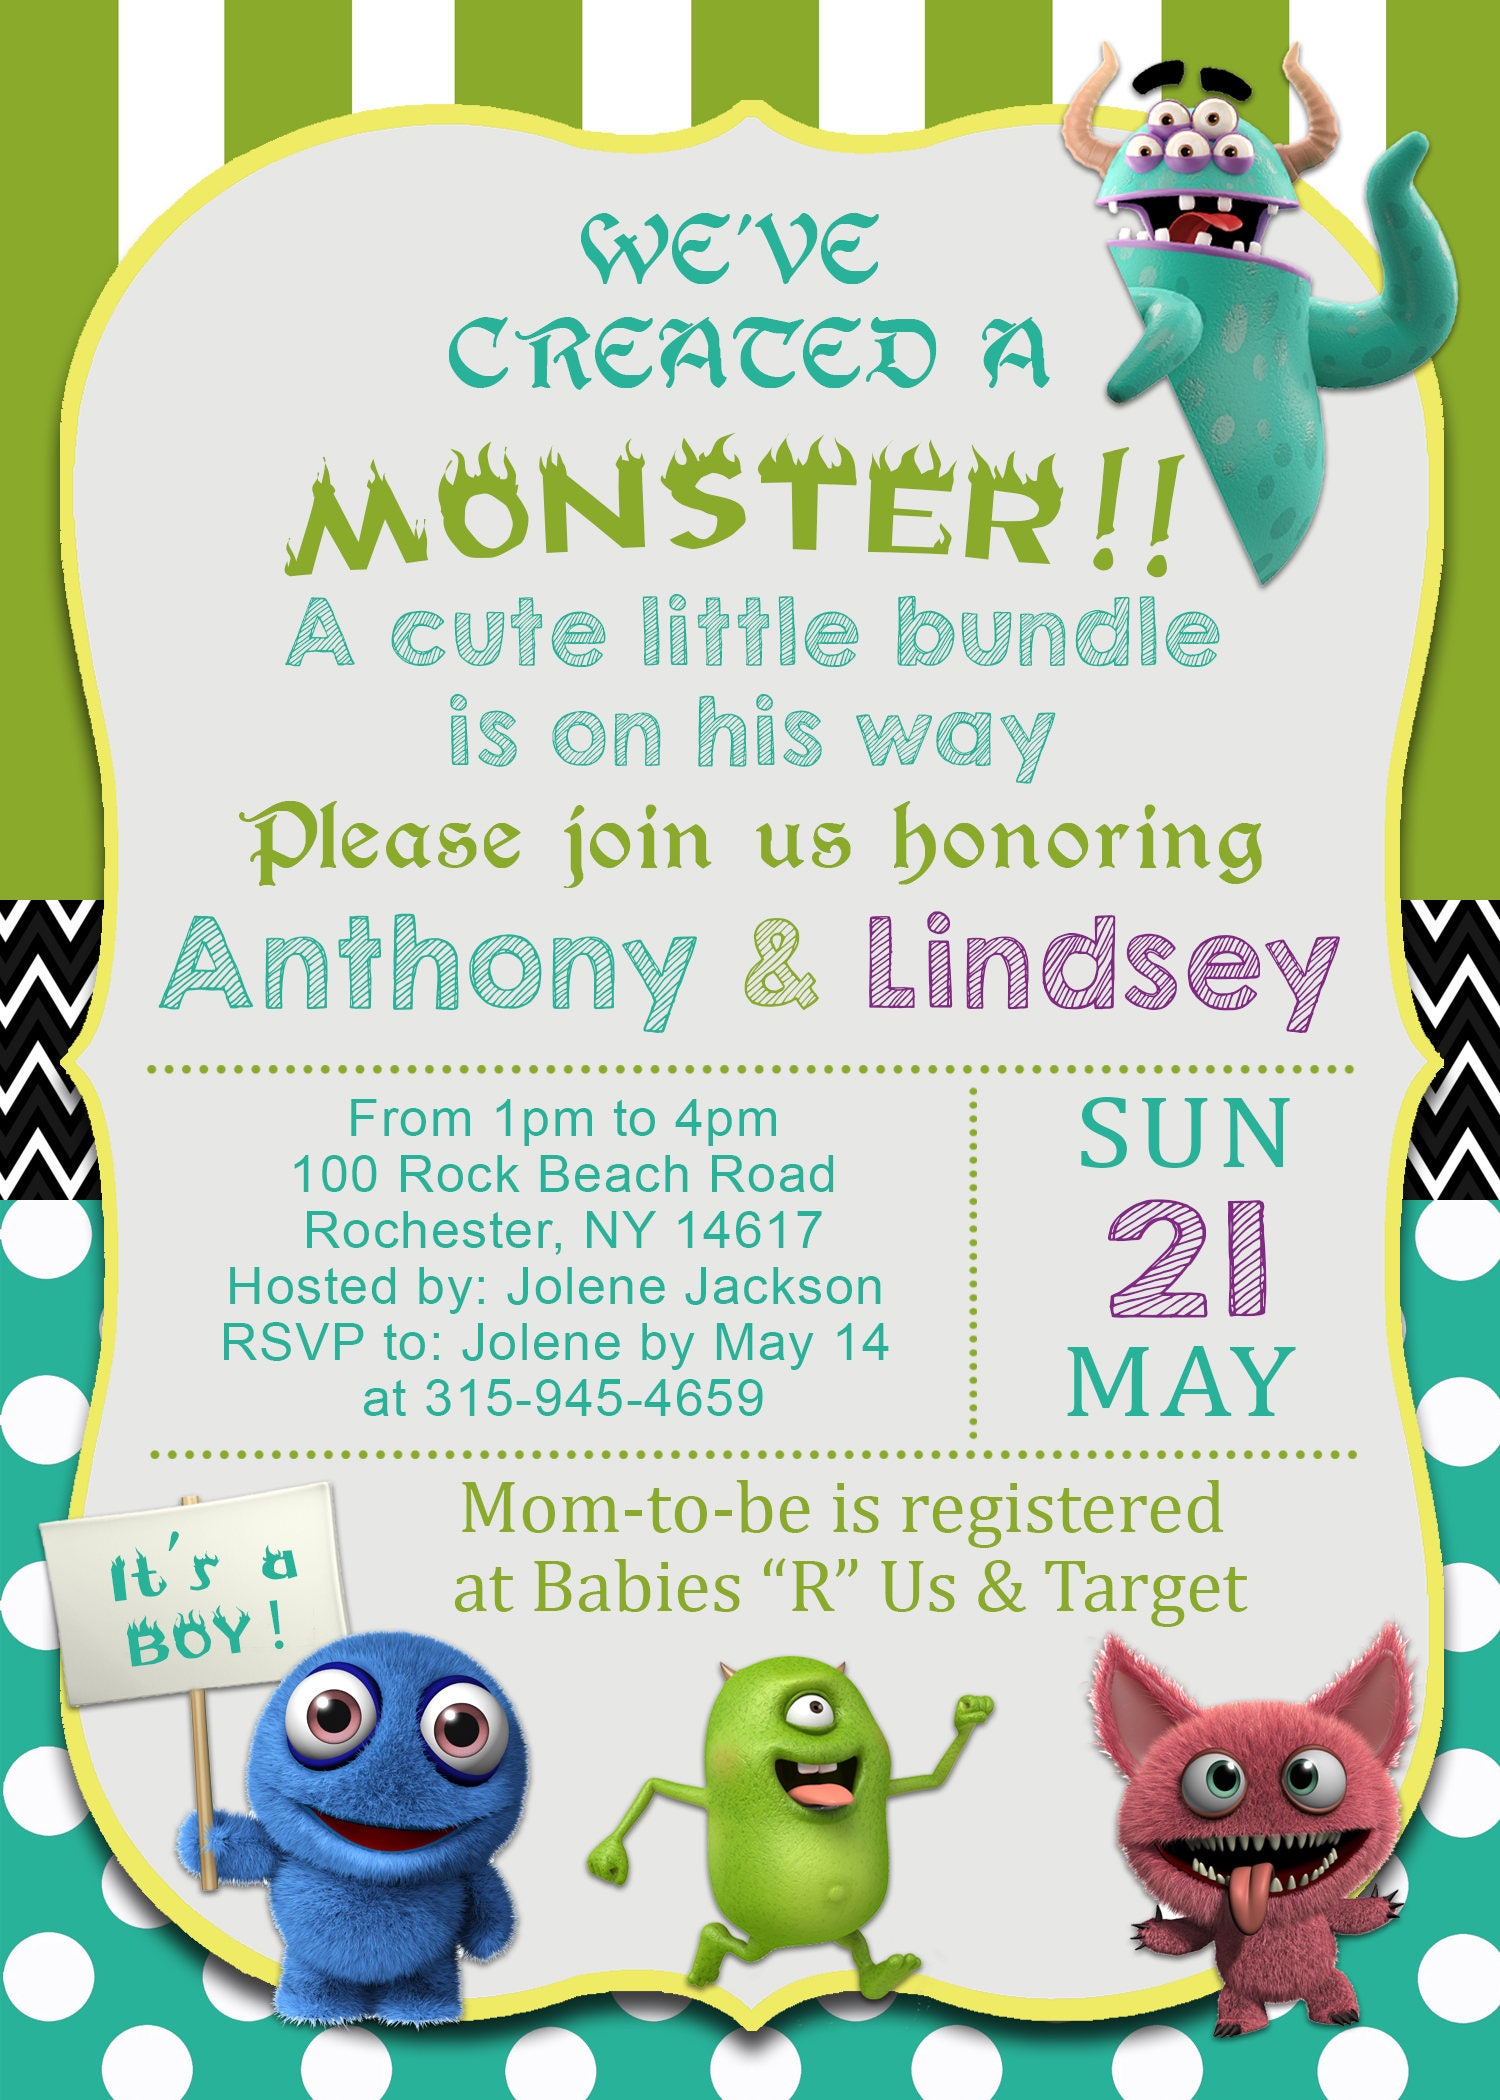 Monsters Inc. Inspired Baby Boy Shower Invitation, Green & Teal ...